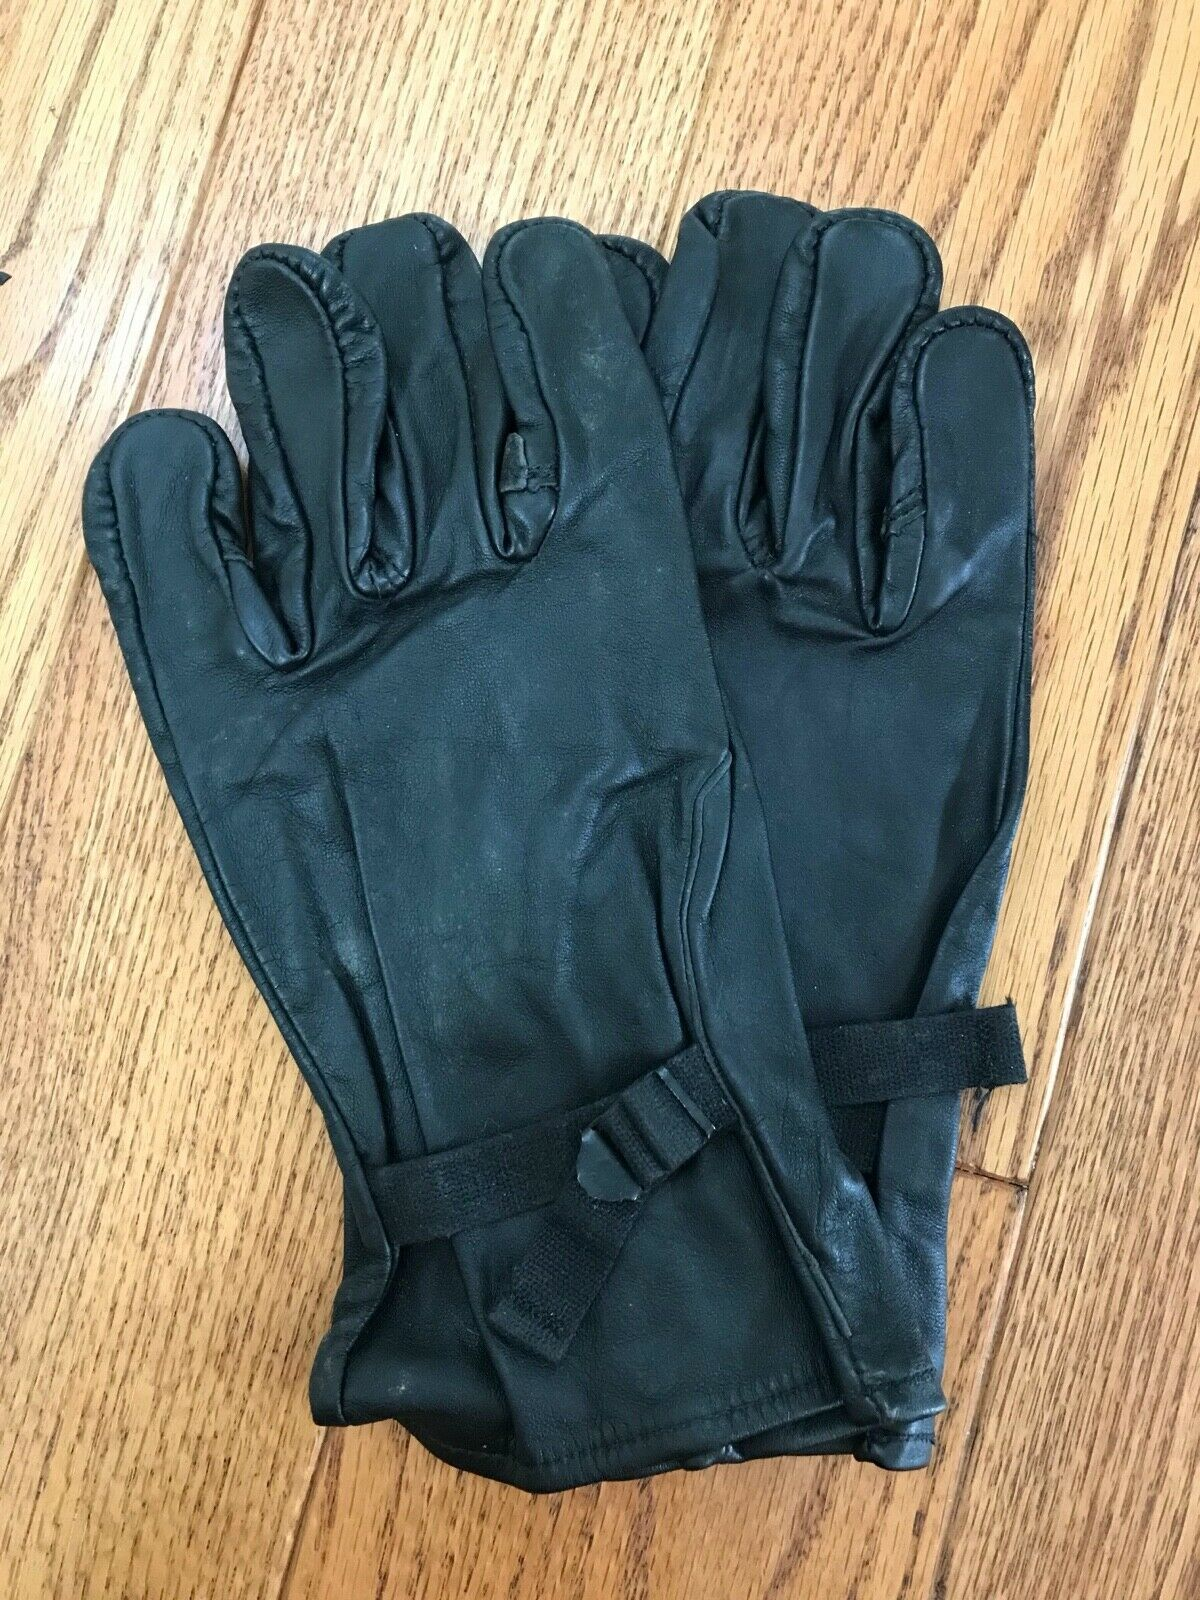 G.I. Gloves 100% Genuine Leather Water resistant Warm Made in USA